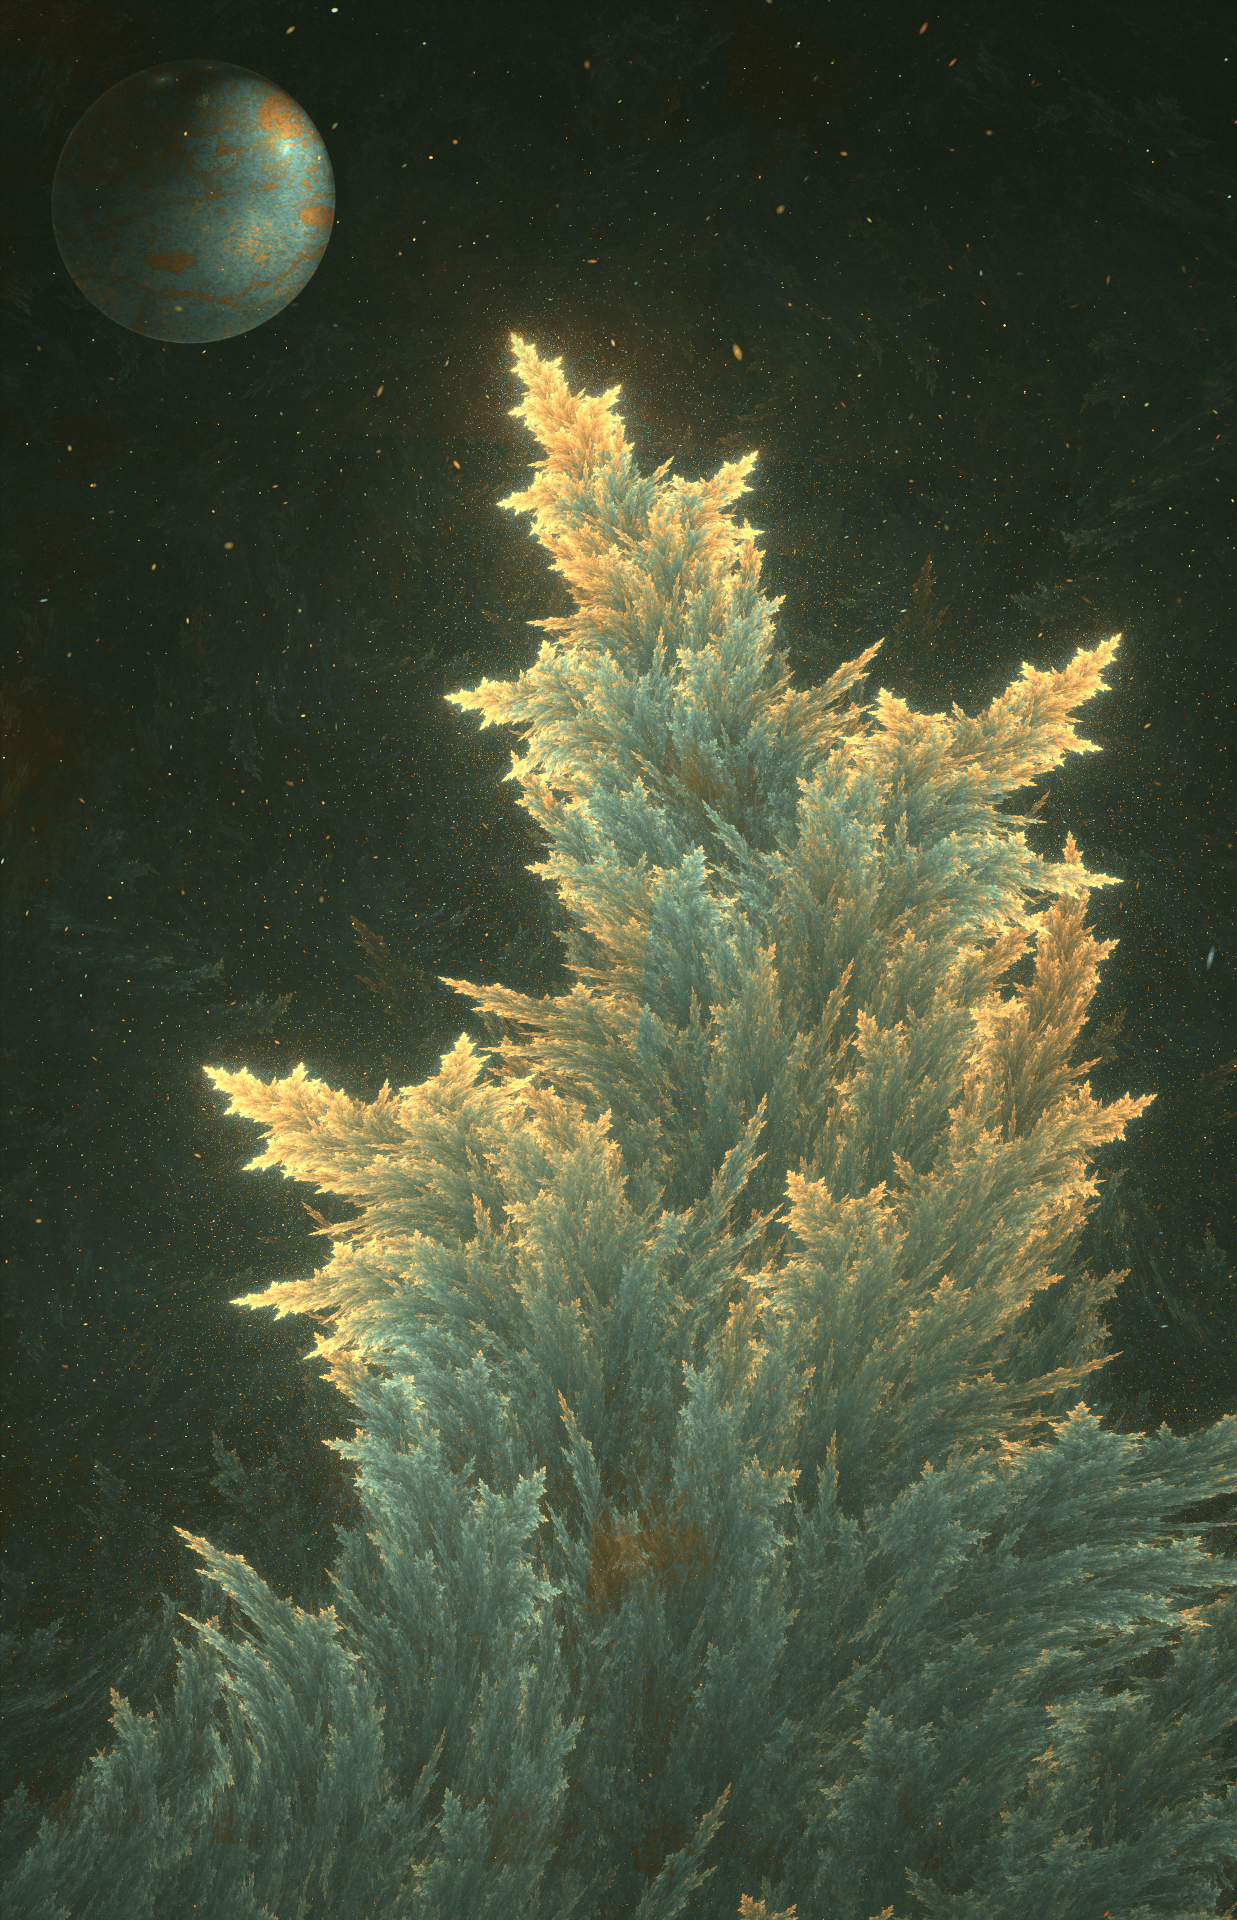 Dreams of a conifer tree at night